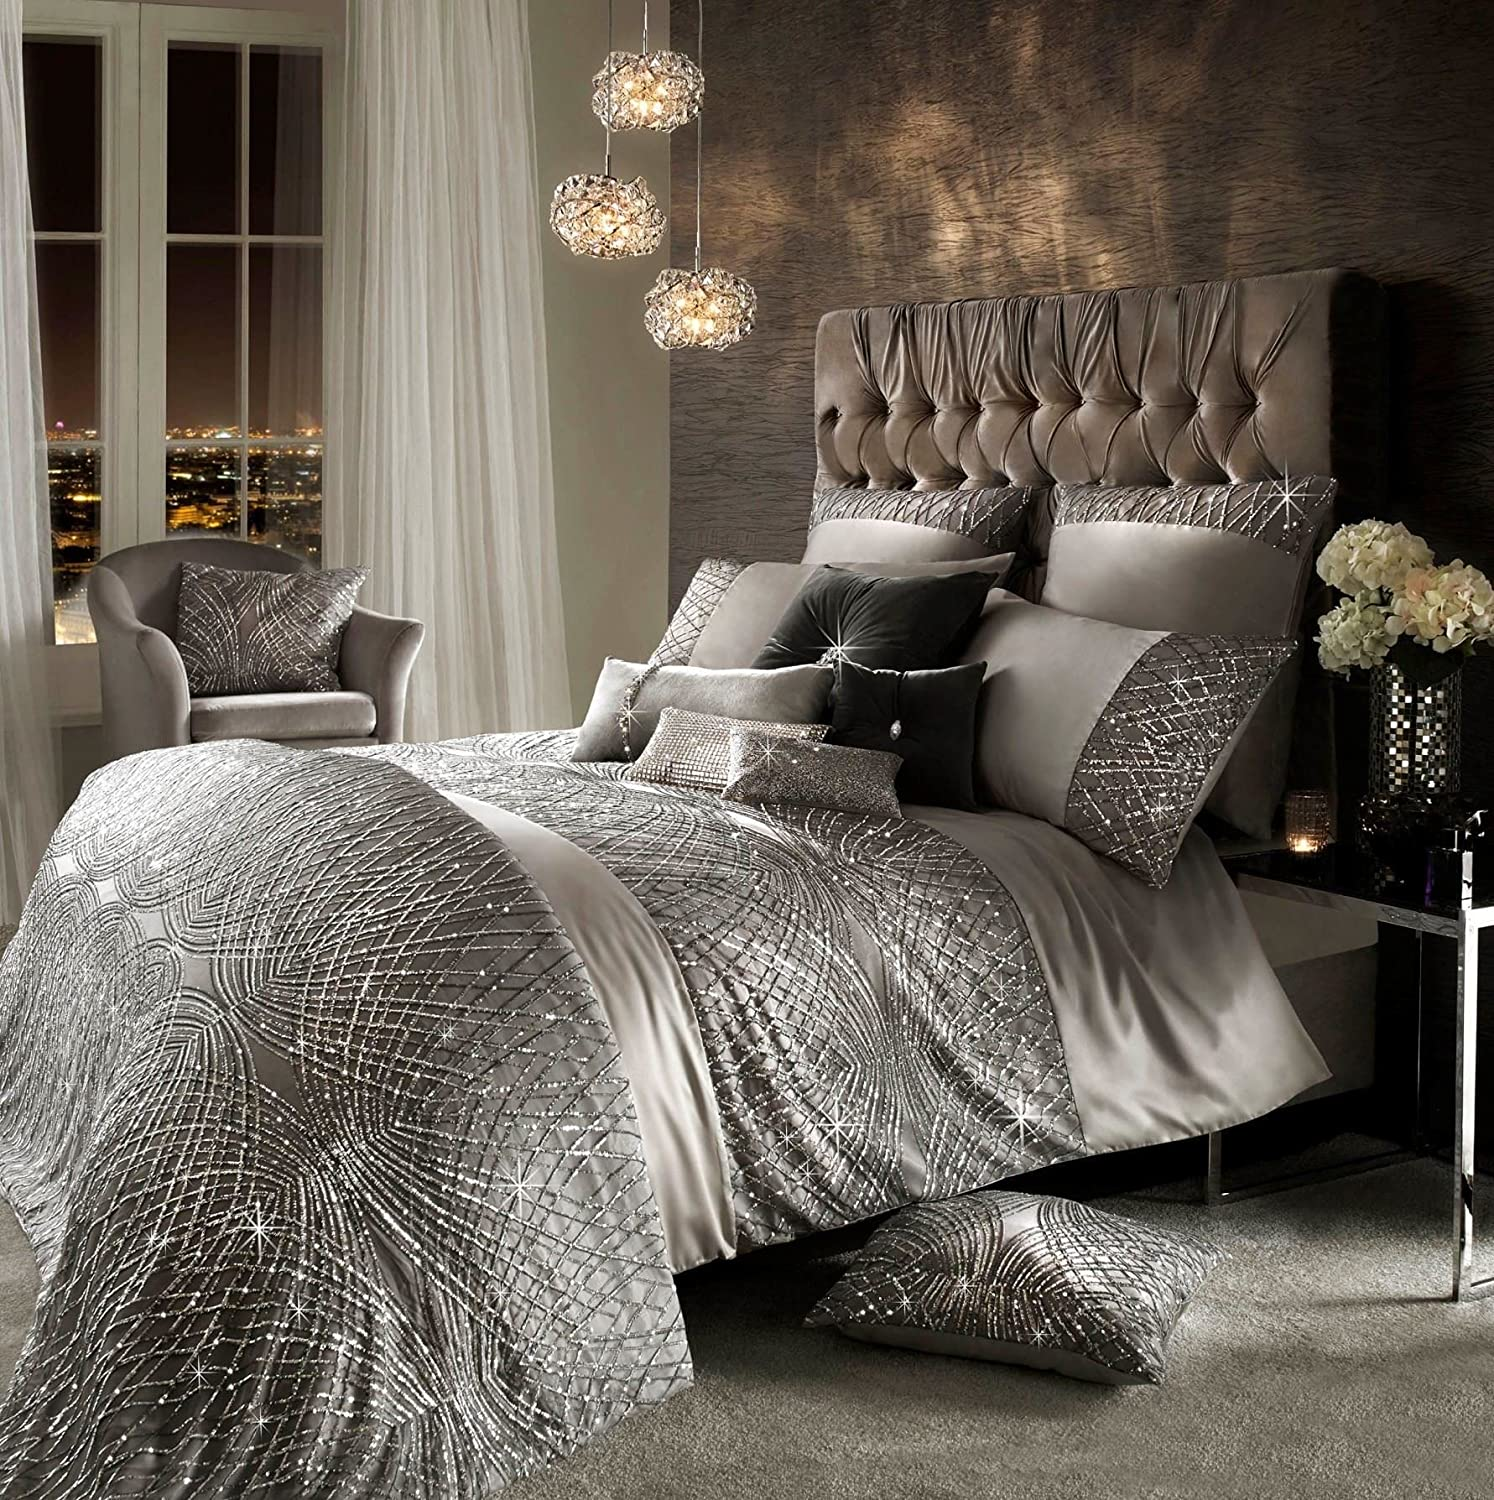 Boxing Day Bedding Sets Sale Ease Bedding With Style